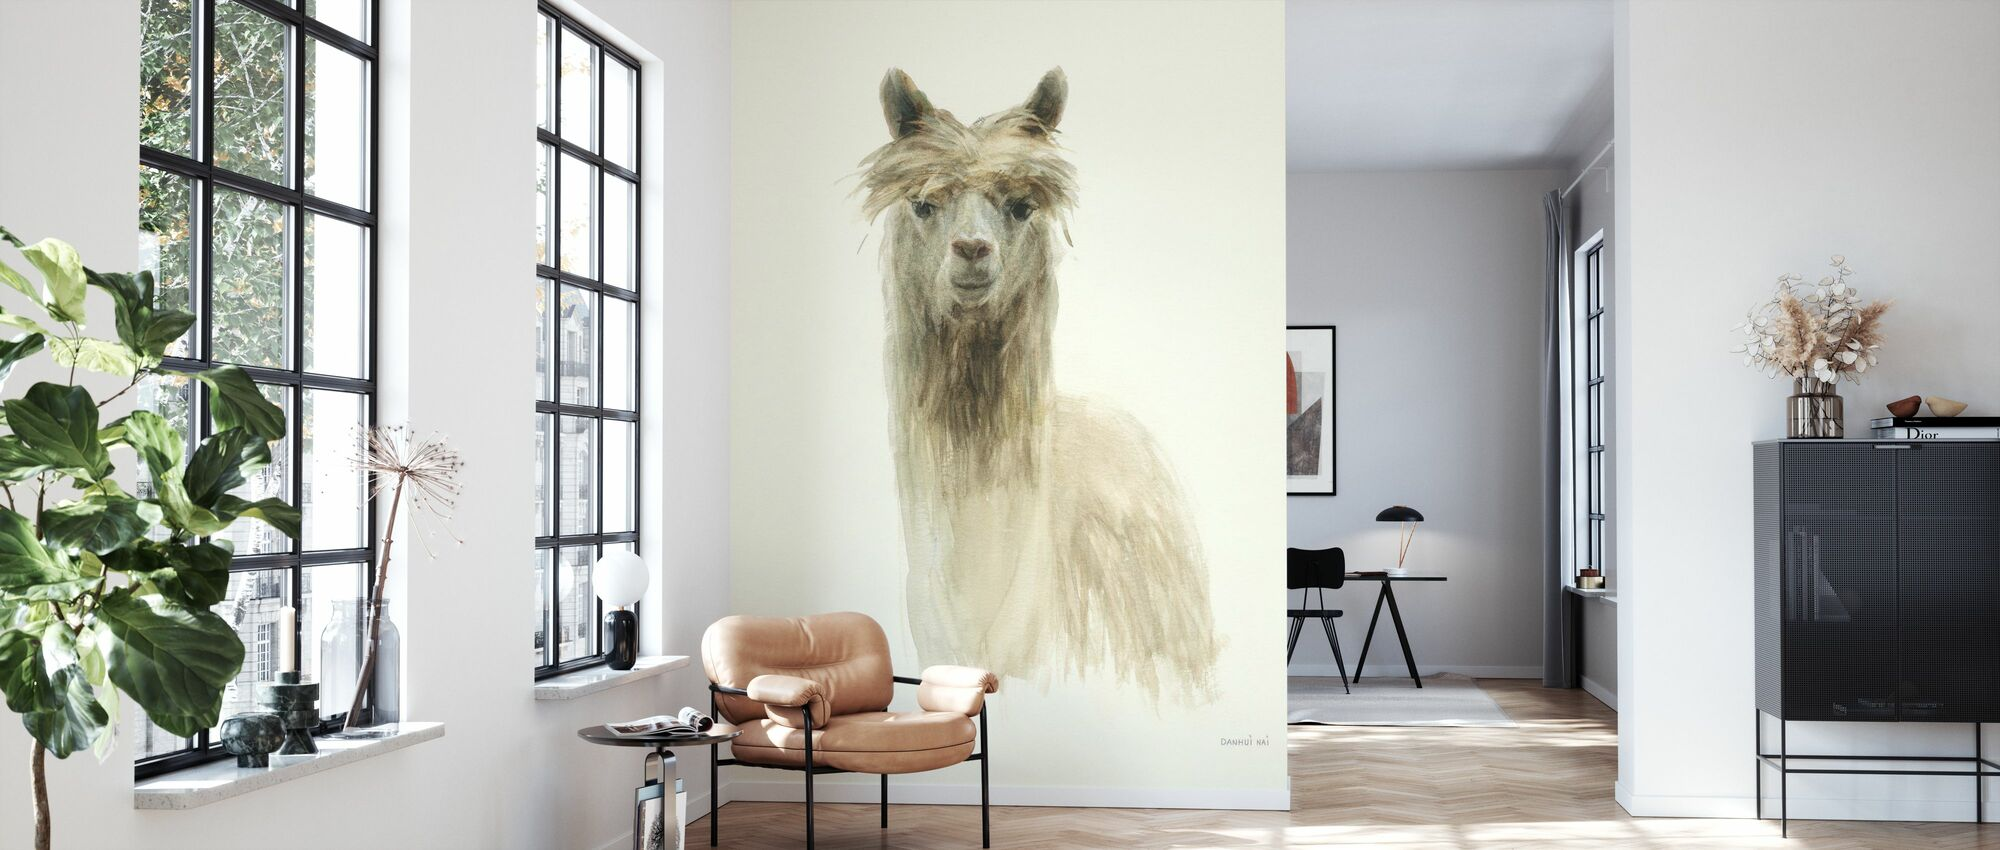 Classic Llamas I - Wallpaper - Living Room